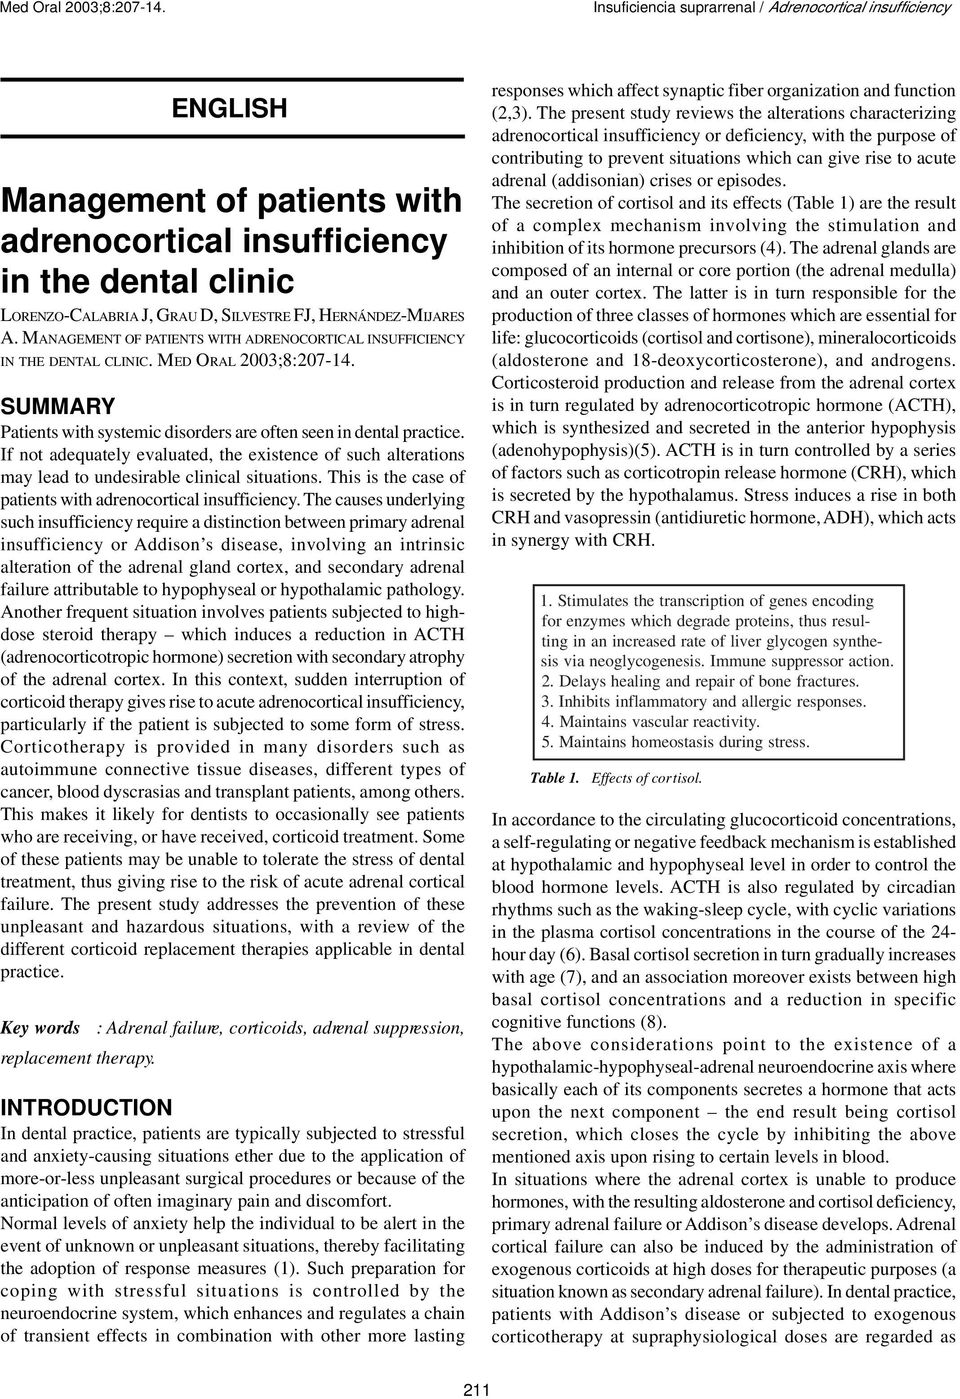 If not adequately evaluated, the existence of such alterations may lead to undesirable clinical situations. This is the case of patients with adrenocortical insufficiency.